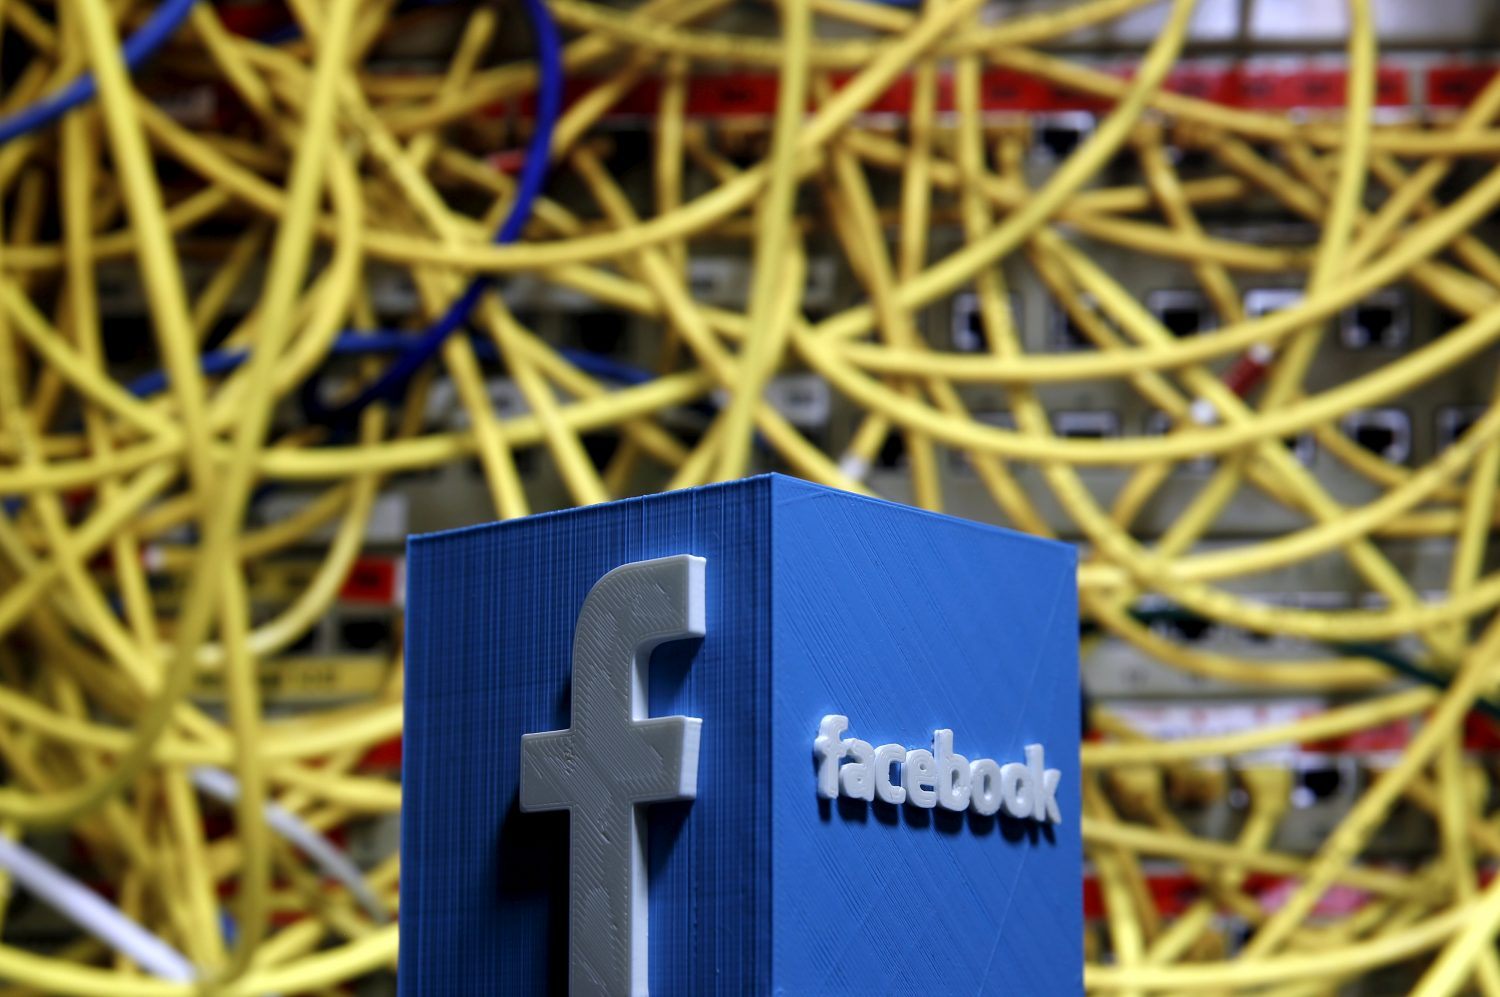 FILE PHOTO: A 3D plastic representation of the Facebook logo is seen in front of displayed cables in this illustration in Zenica, Bosnia and Herzegovina May 13, 2015. REUTERS/Dado Ruvic/File Photo